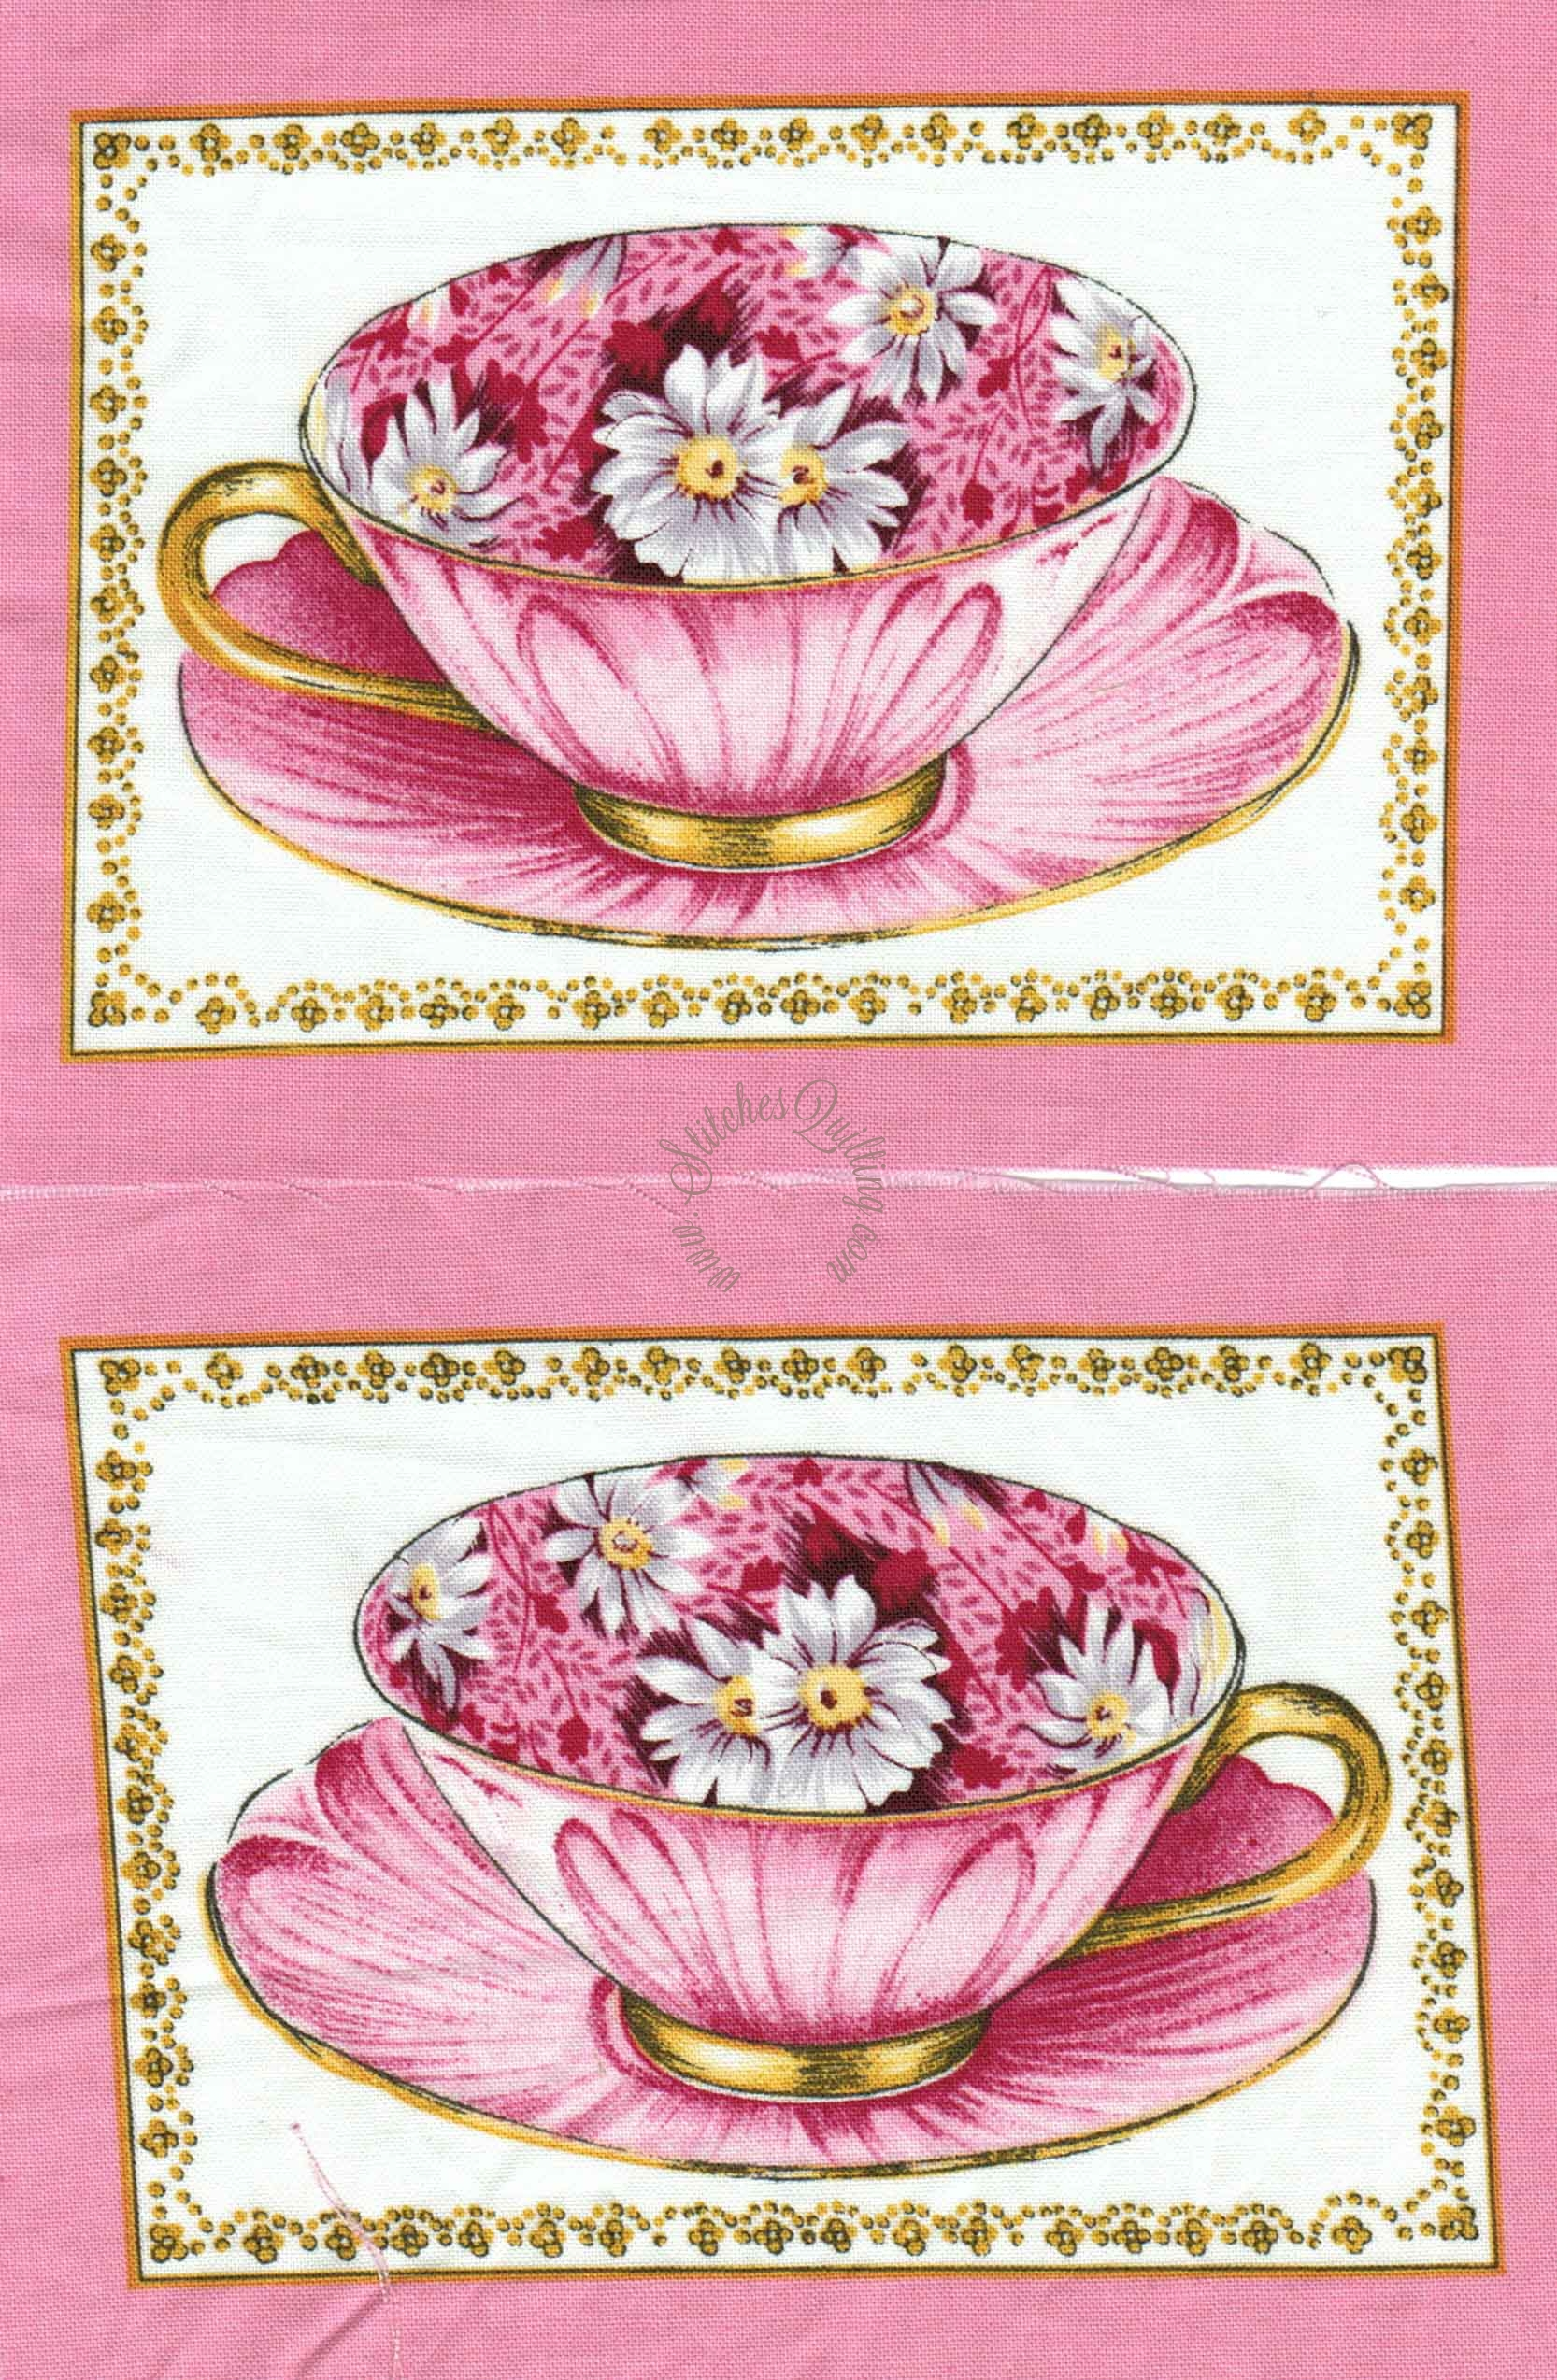 Rare Royal Doulton Tea Cup Quilt Kit Stitches Quilting